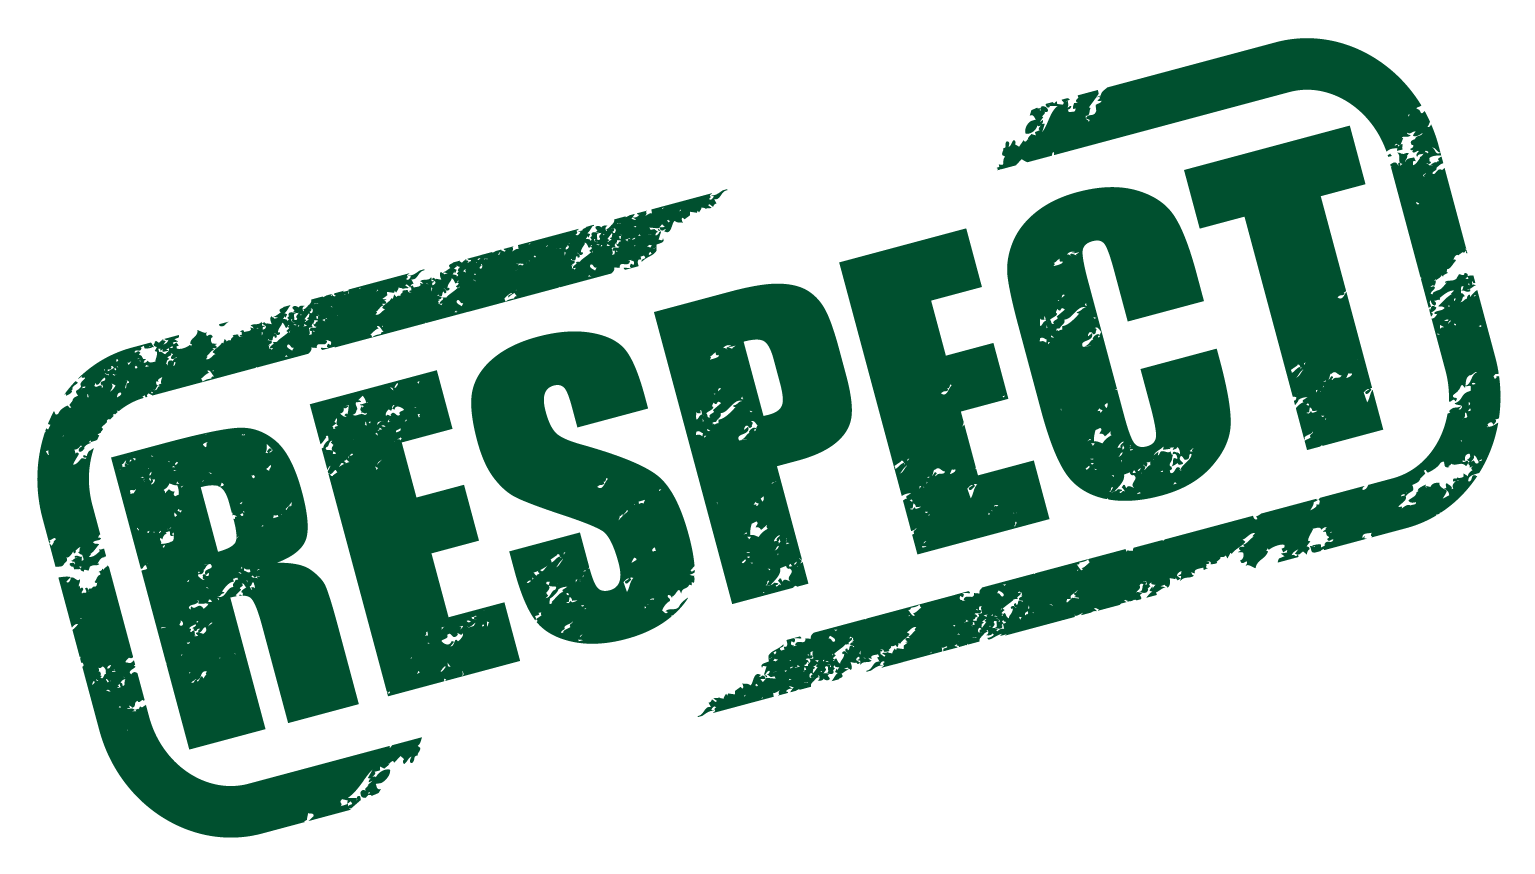 RESPECT RGB.png